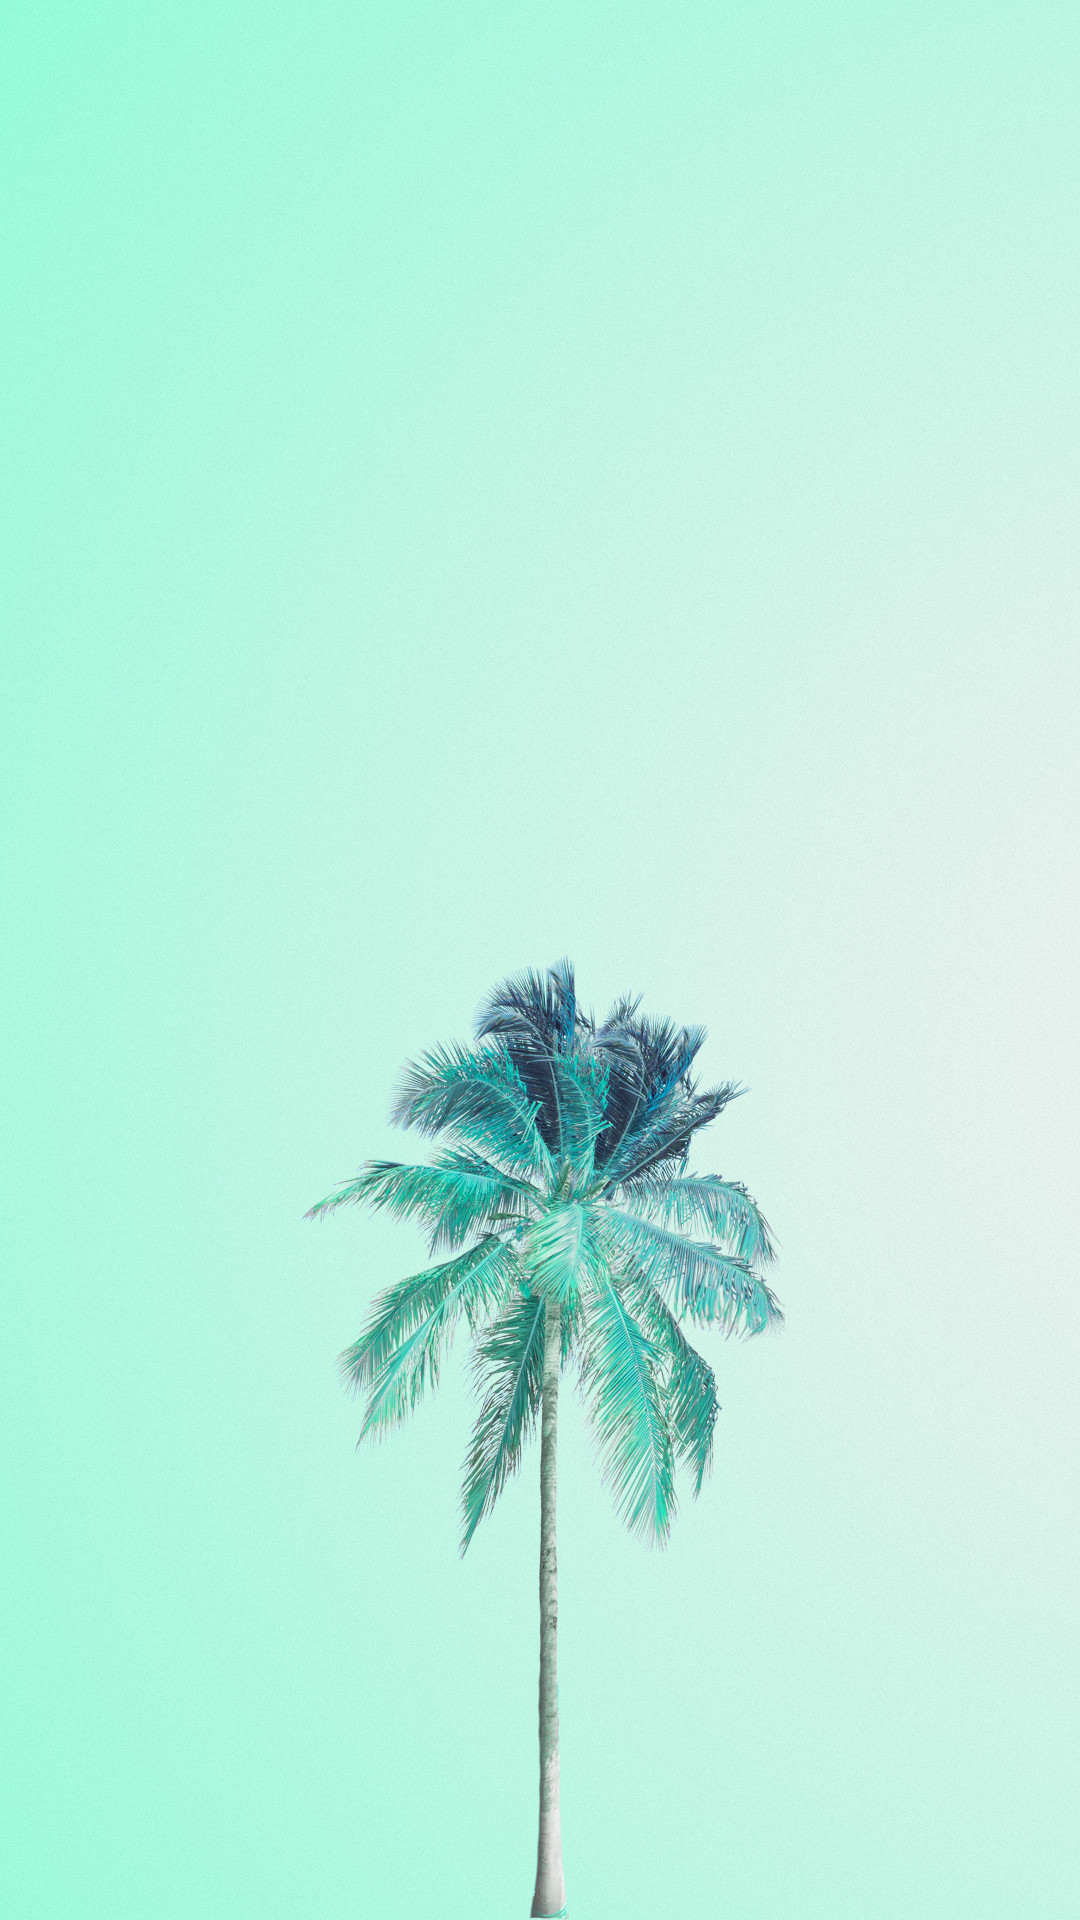 1080x1920 Mind Green & The lonely PalmTree